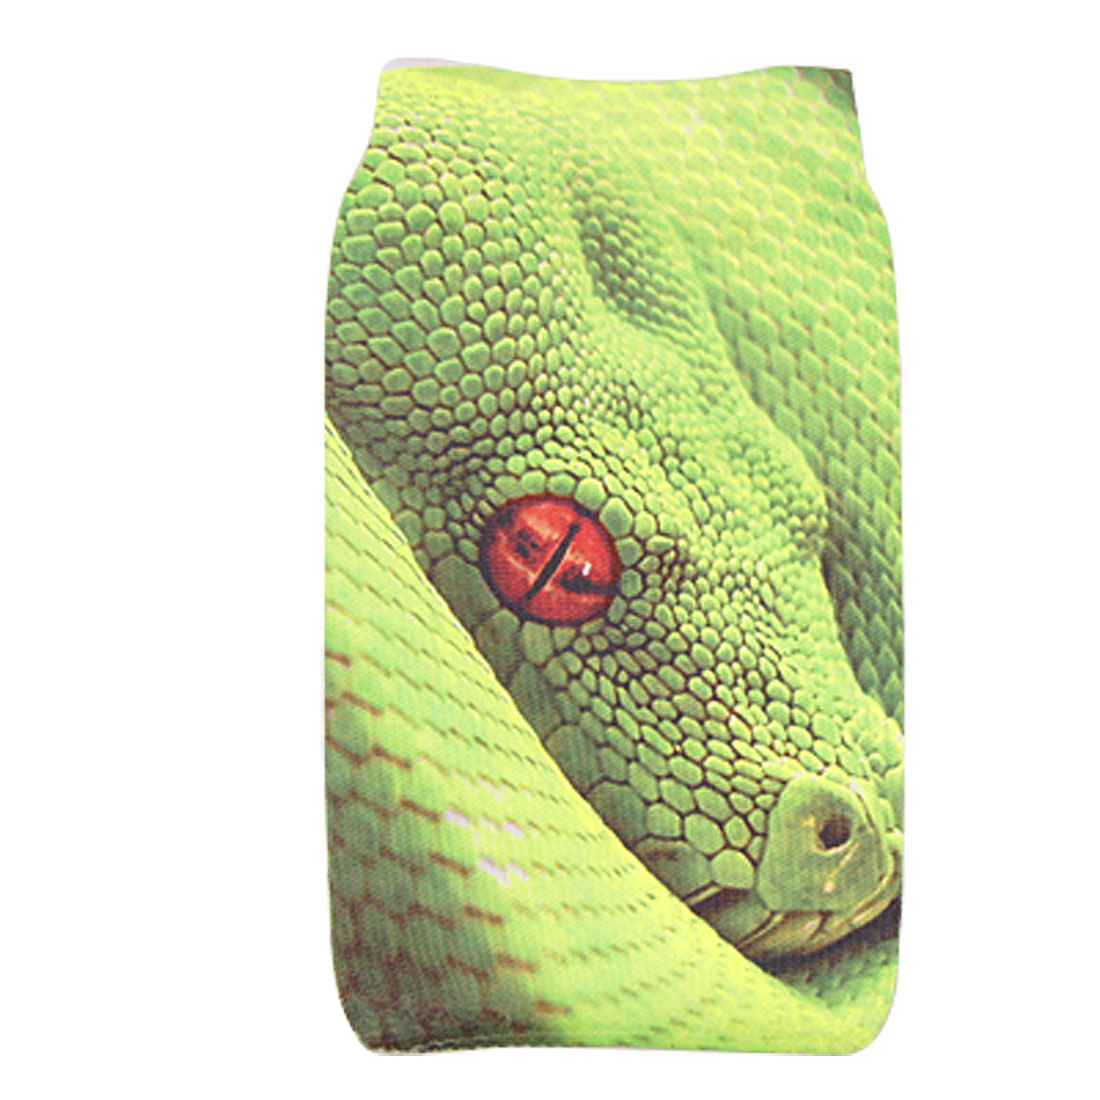 Green Lizard Pattern Stretchy Sock Bag for Mobile Phone